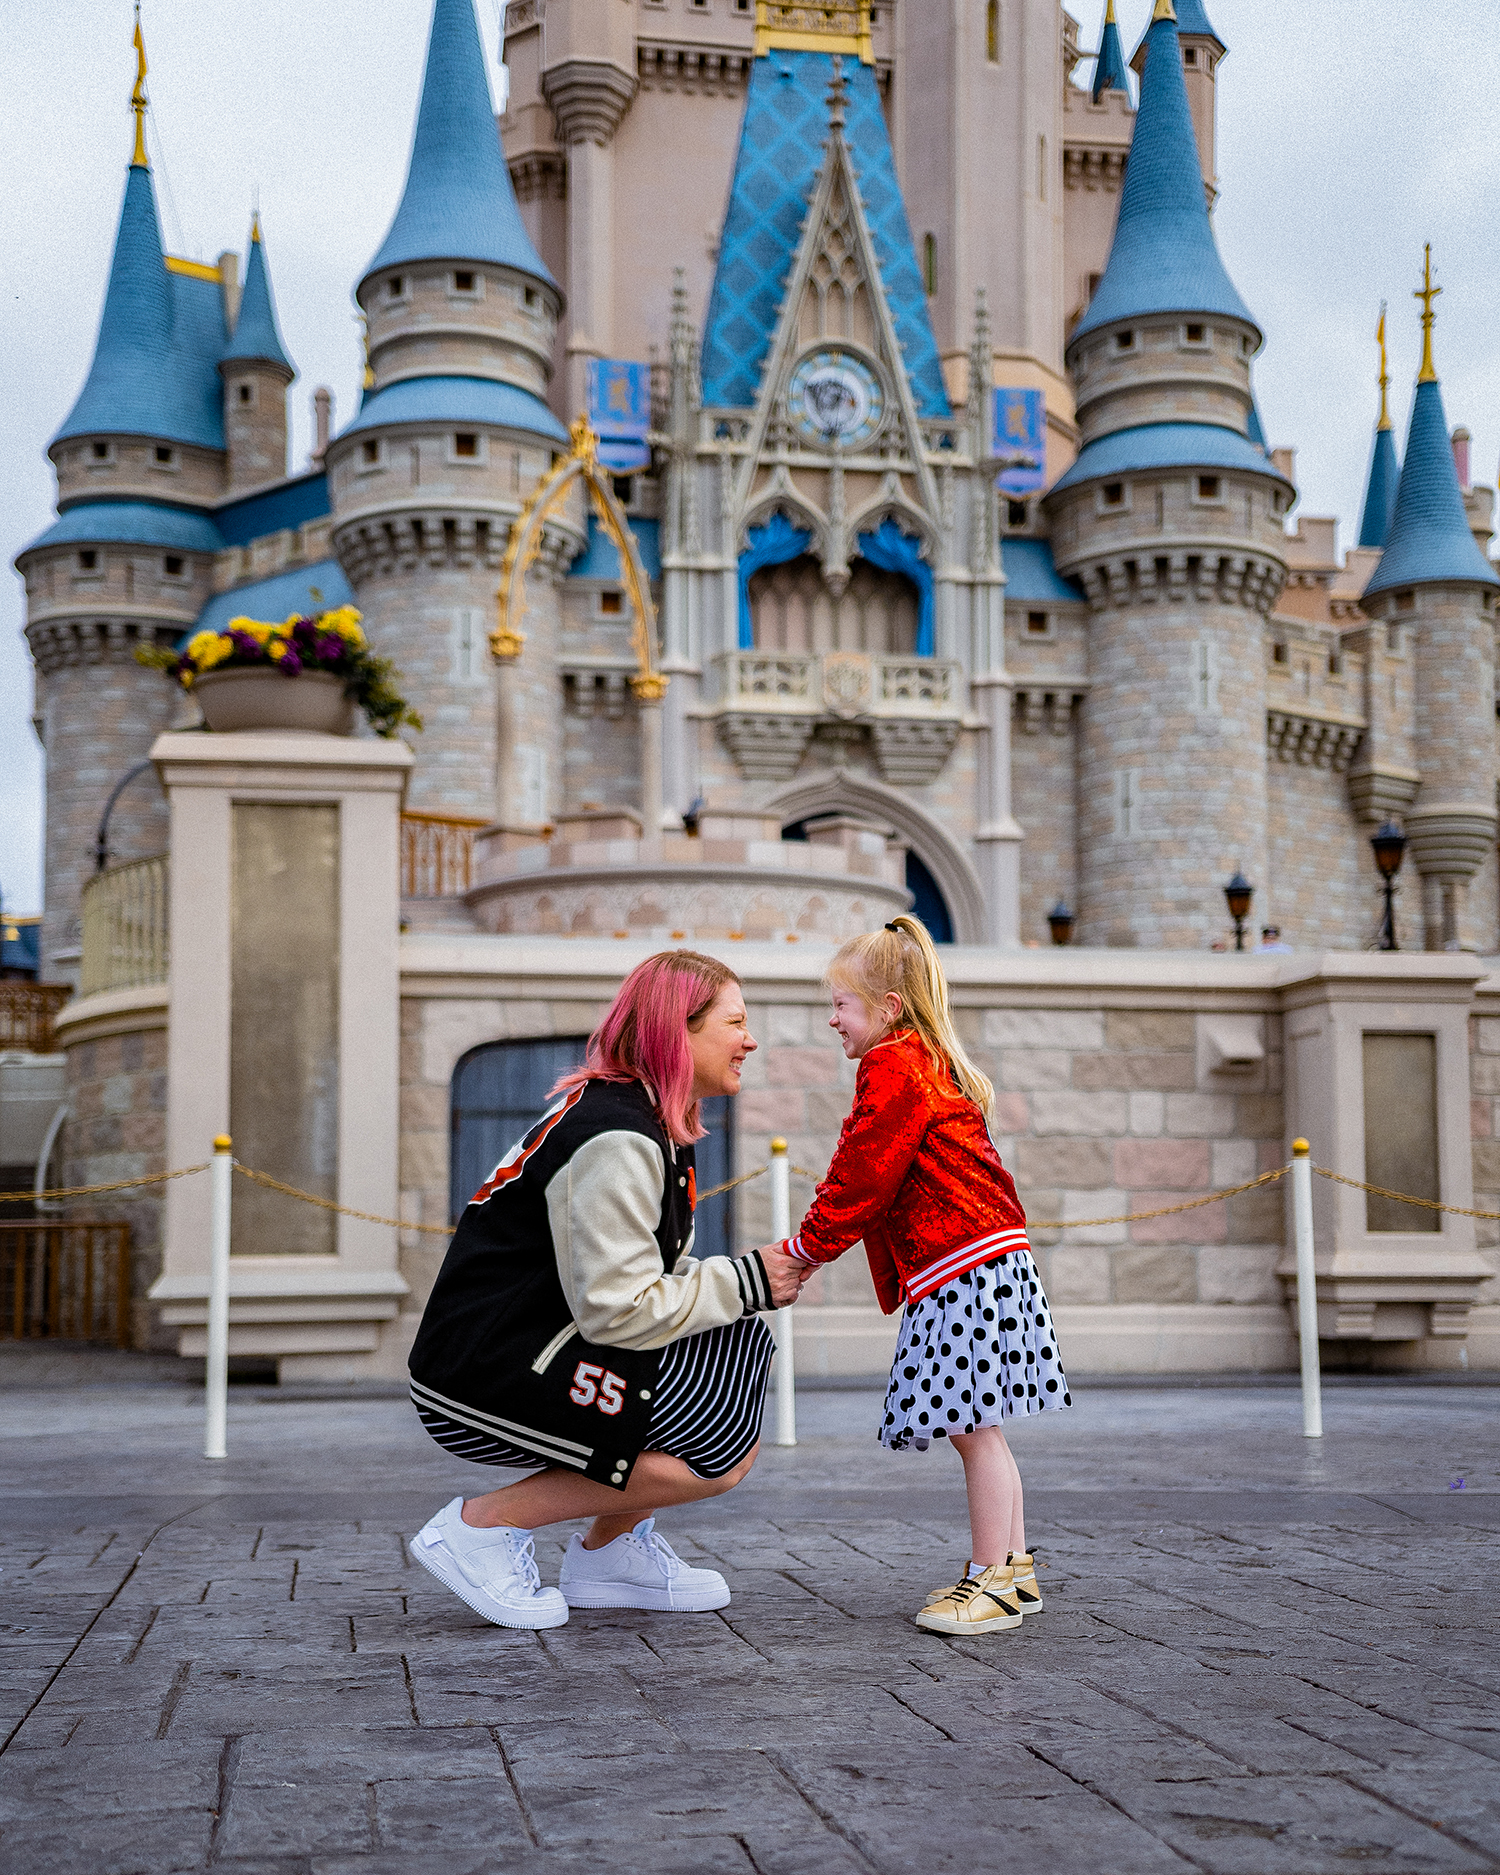 Looking for outfits for Disney World? These are the BEST options for each park that are comfortable and fitting with each season!